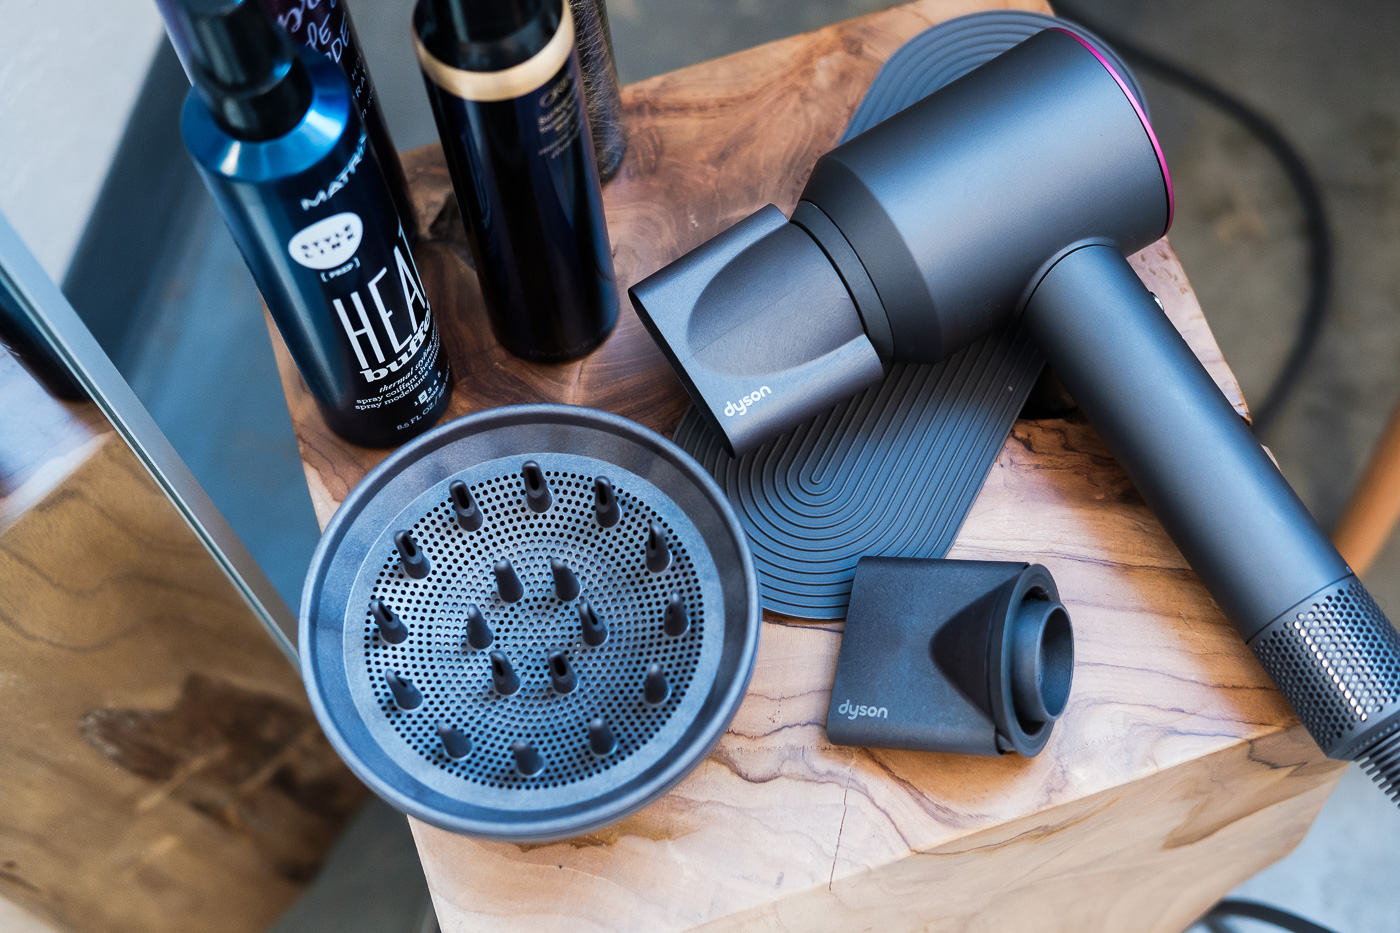 dyson-hairdryer-review-how-to-use-dyson-hairdryer-2